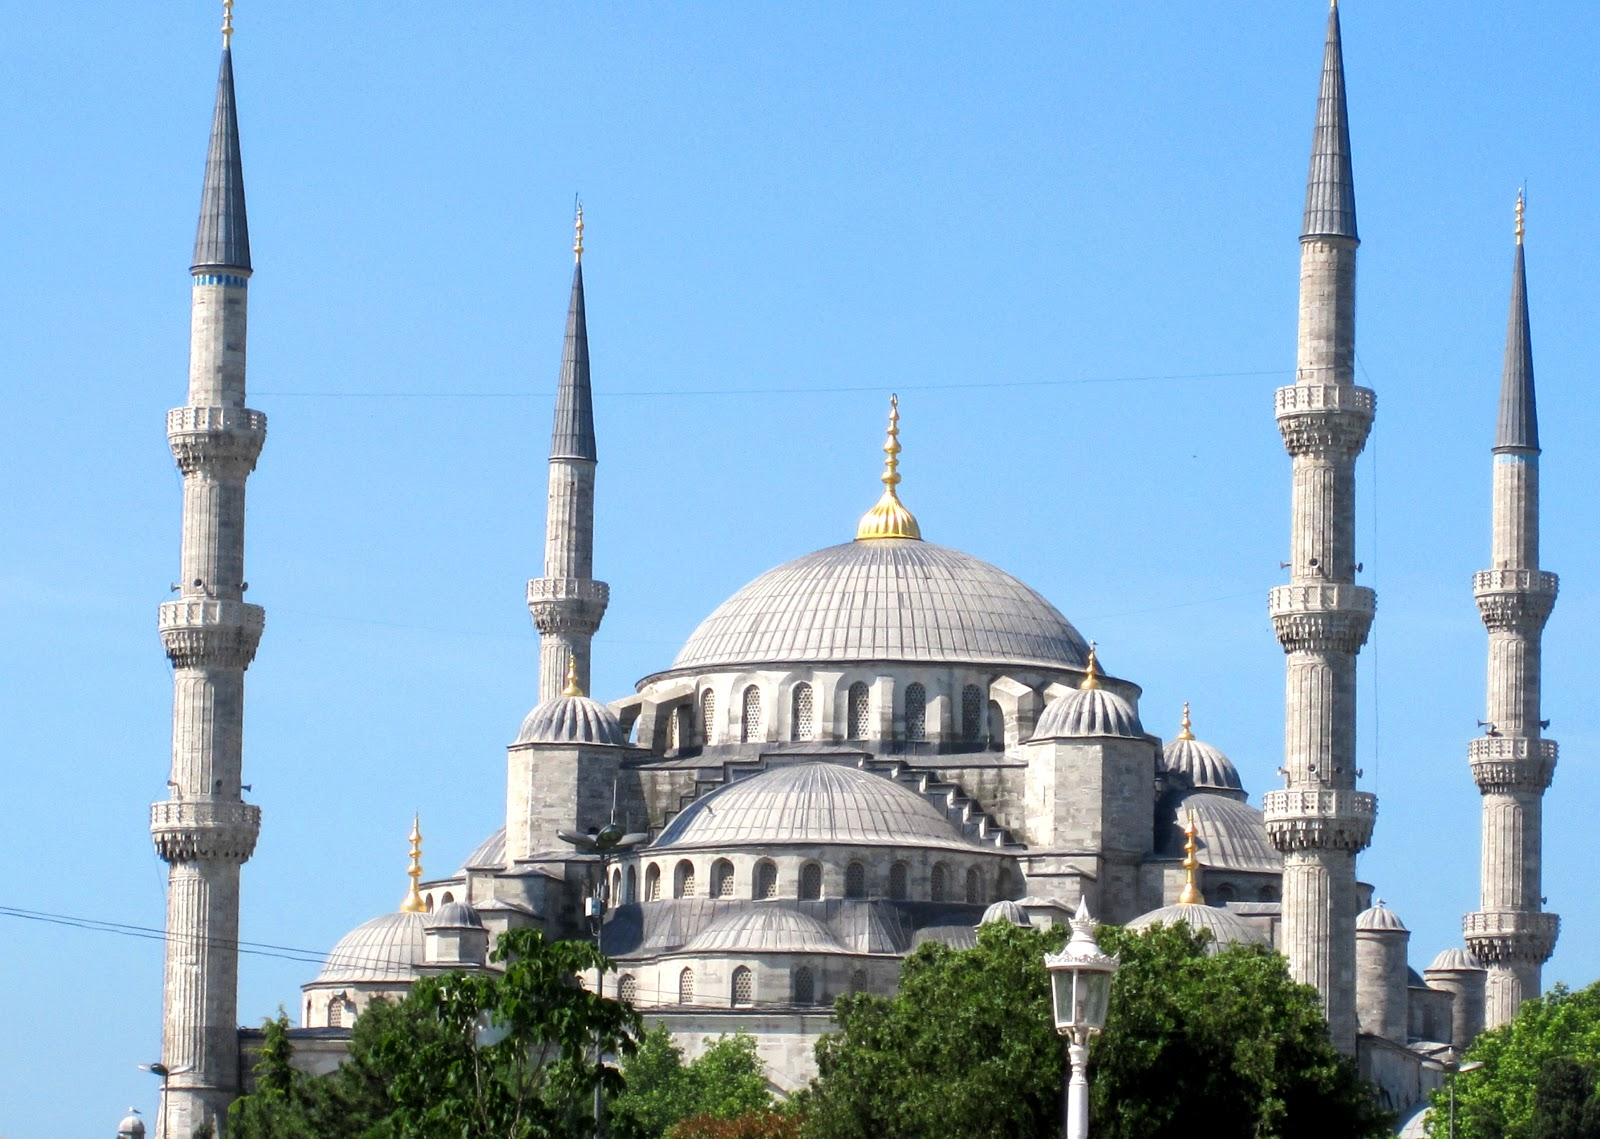 Cannundrums: Sultan Ahmed or Blue Mosque - Istanbul